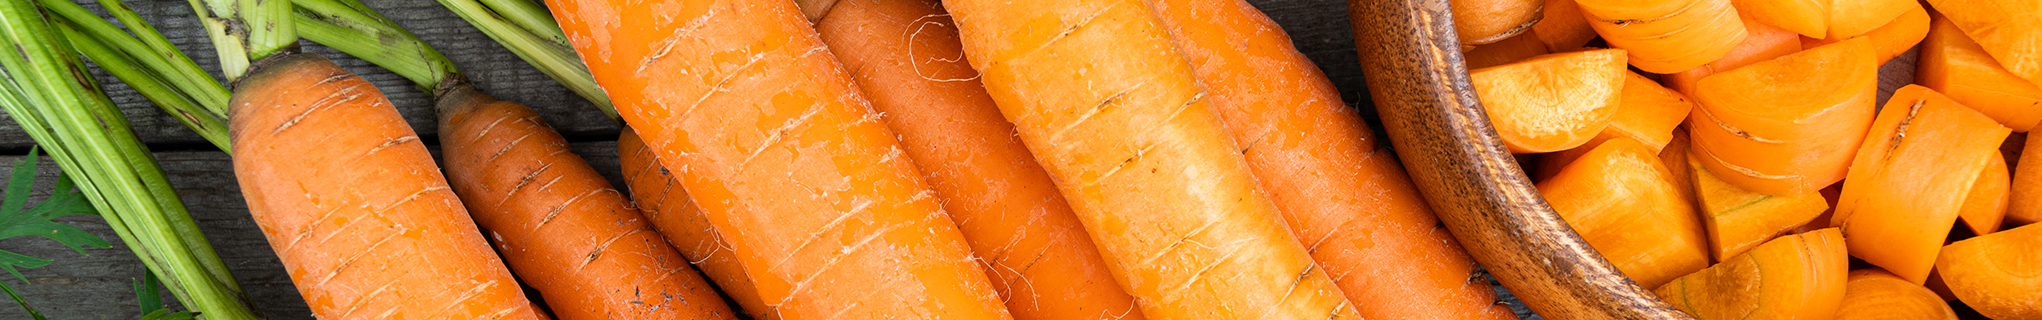 Raw carrot image